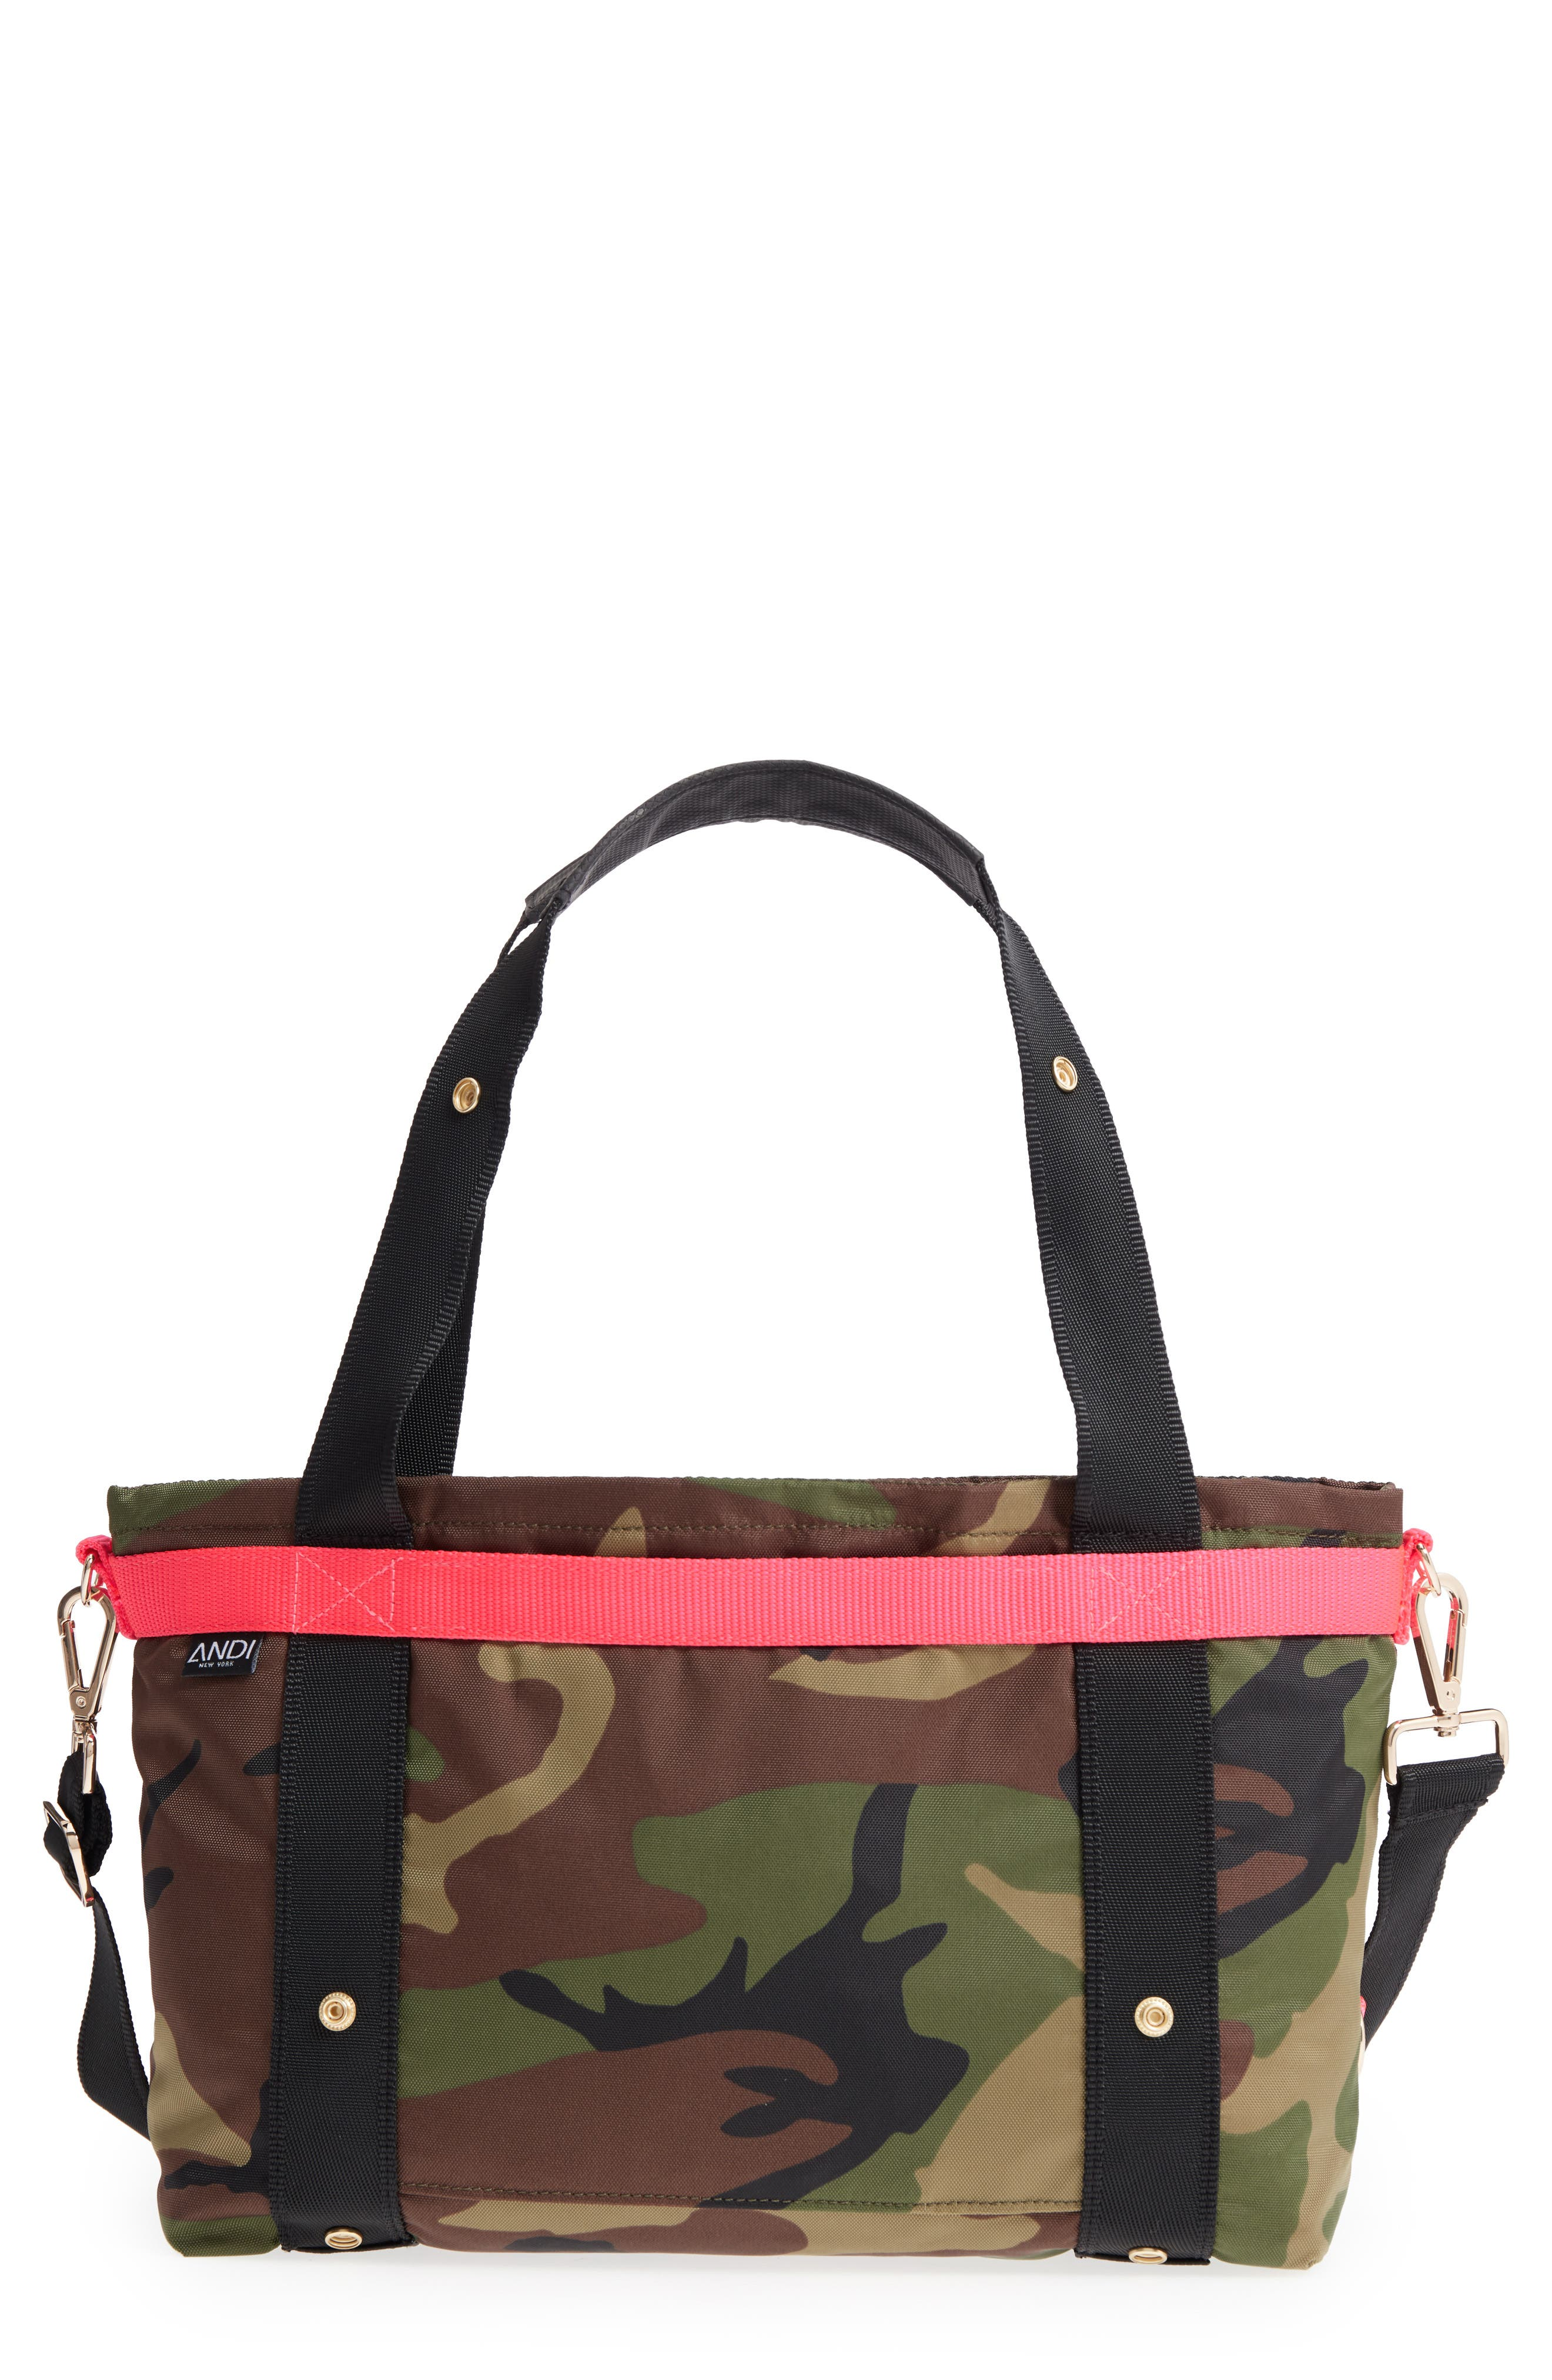 ANDI Small Convertible Tote - Green in Woodland Camouflage/ Hot Pink